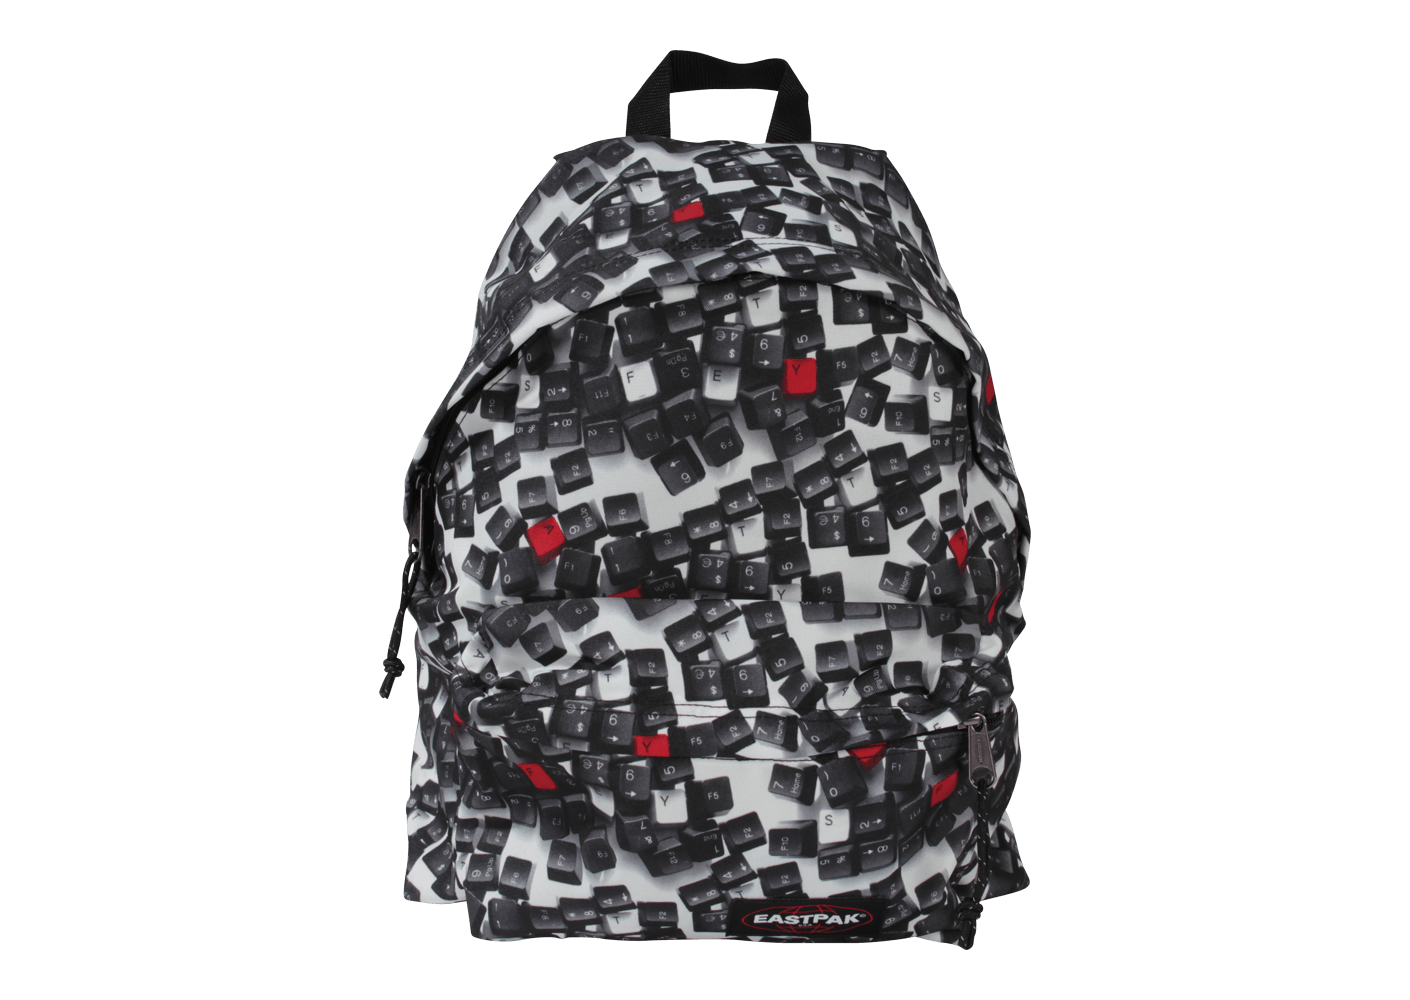 Clavier Padded À Eastpak amp; Chausport Pak'r Dos Sac Sacs Sacoches tw45xCqX5